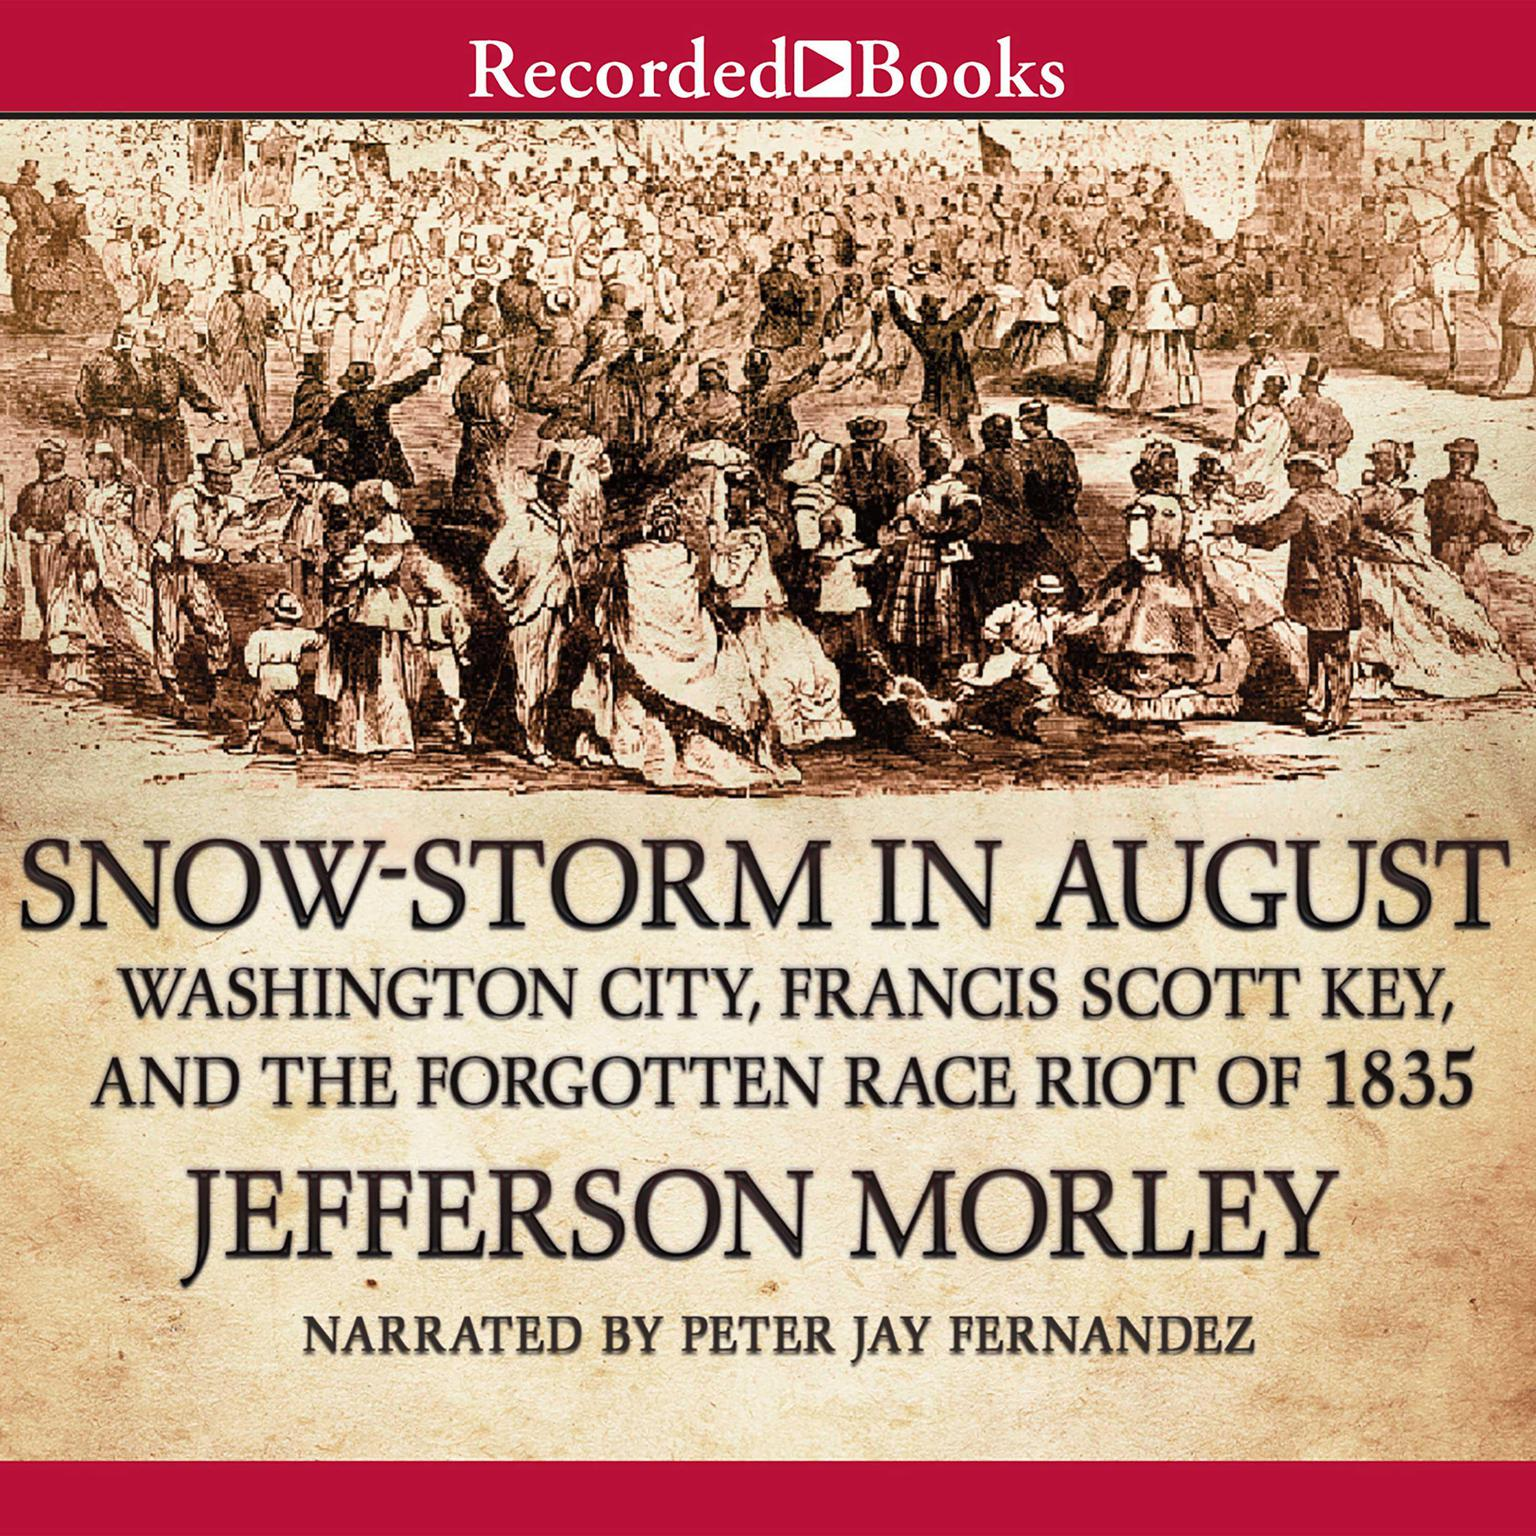 Printable Snow-Storm in August: Washington City, Francis Scott Key, and the Forgotten Race Riot of 1835 Audiobook Cover Art